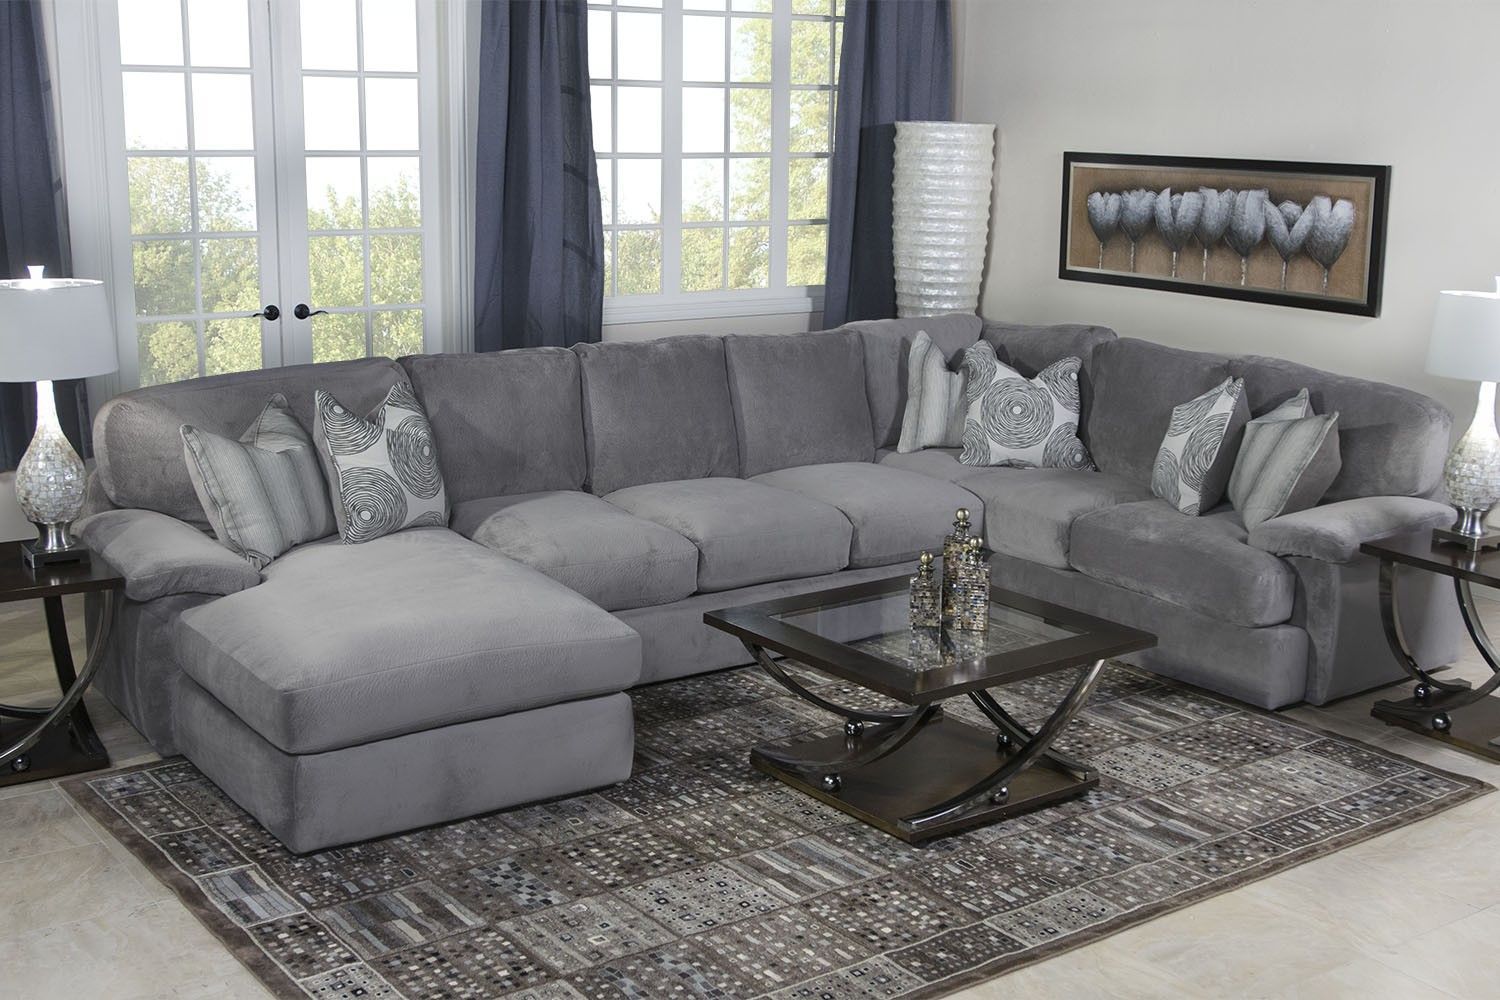 Key west sectional living room in gray living room mor for Drawing room furniture designs